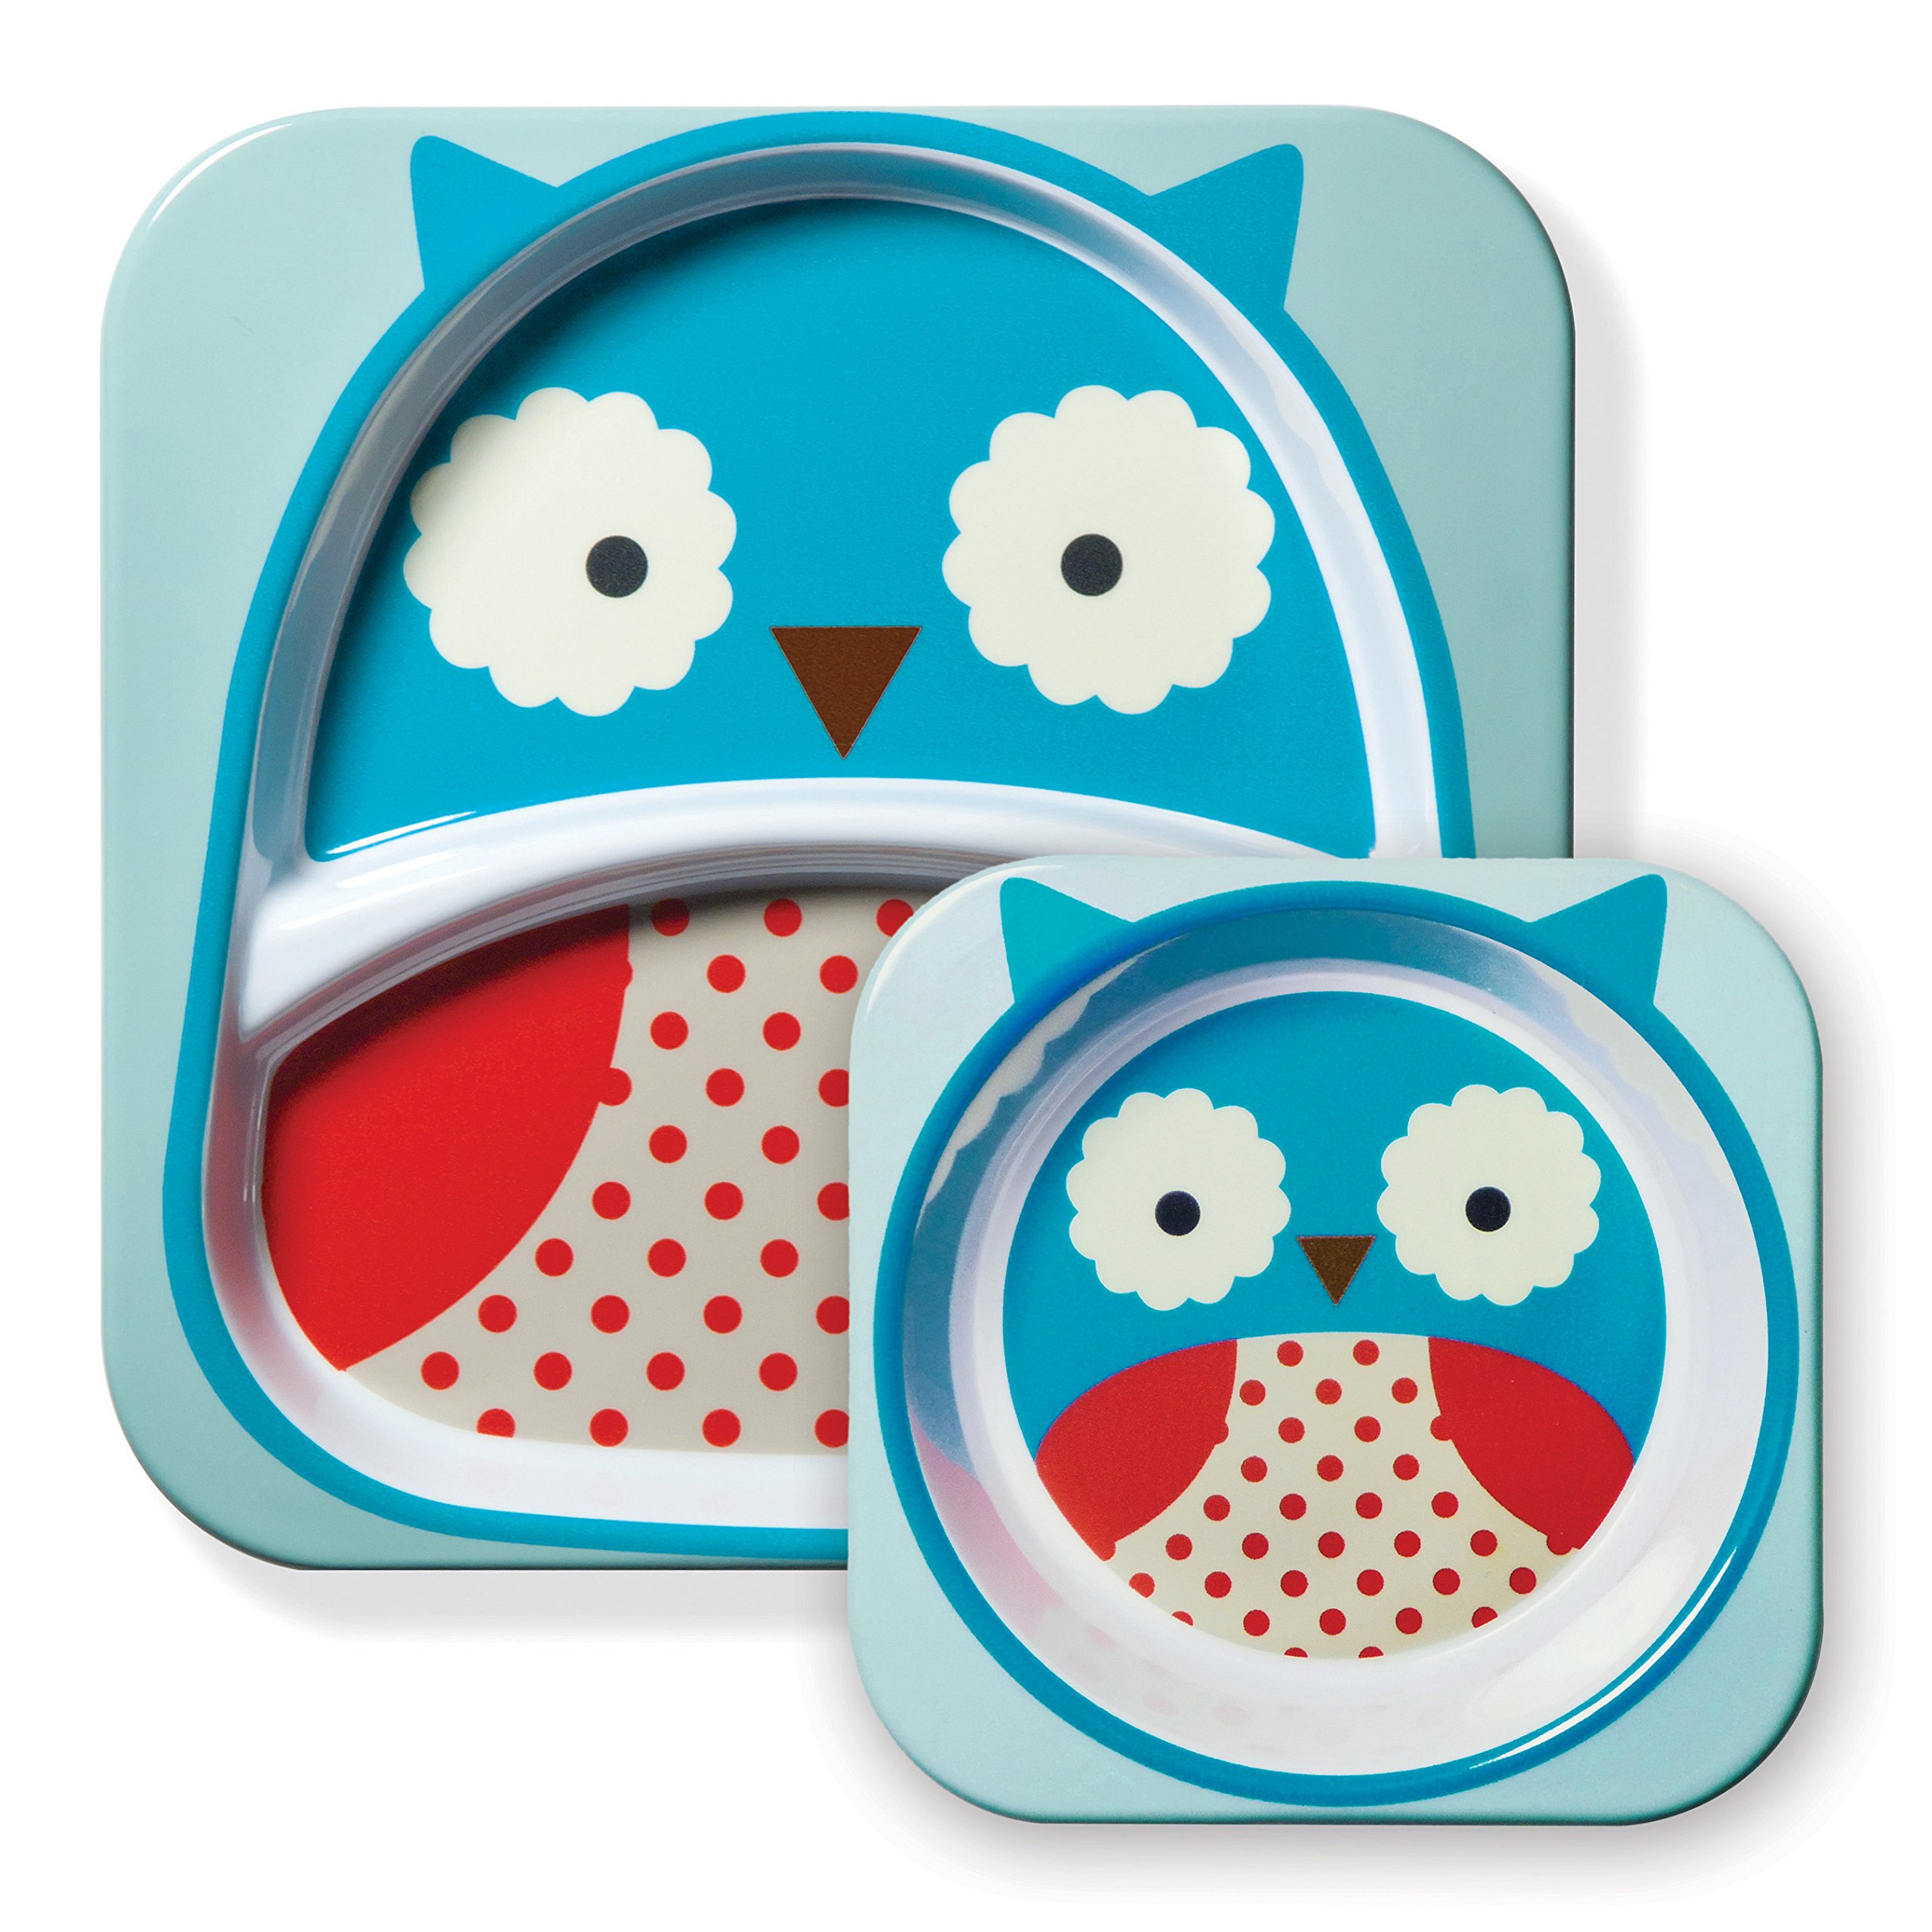 Skip Hop Baby Zoo Little Kid and Toddler Feeding Melamine Divided Plate and Bowl Mealtime Set, Multi Otis Owl